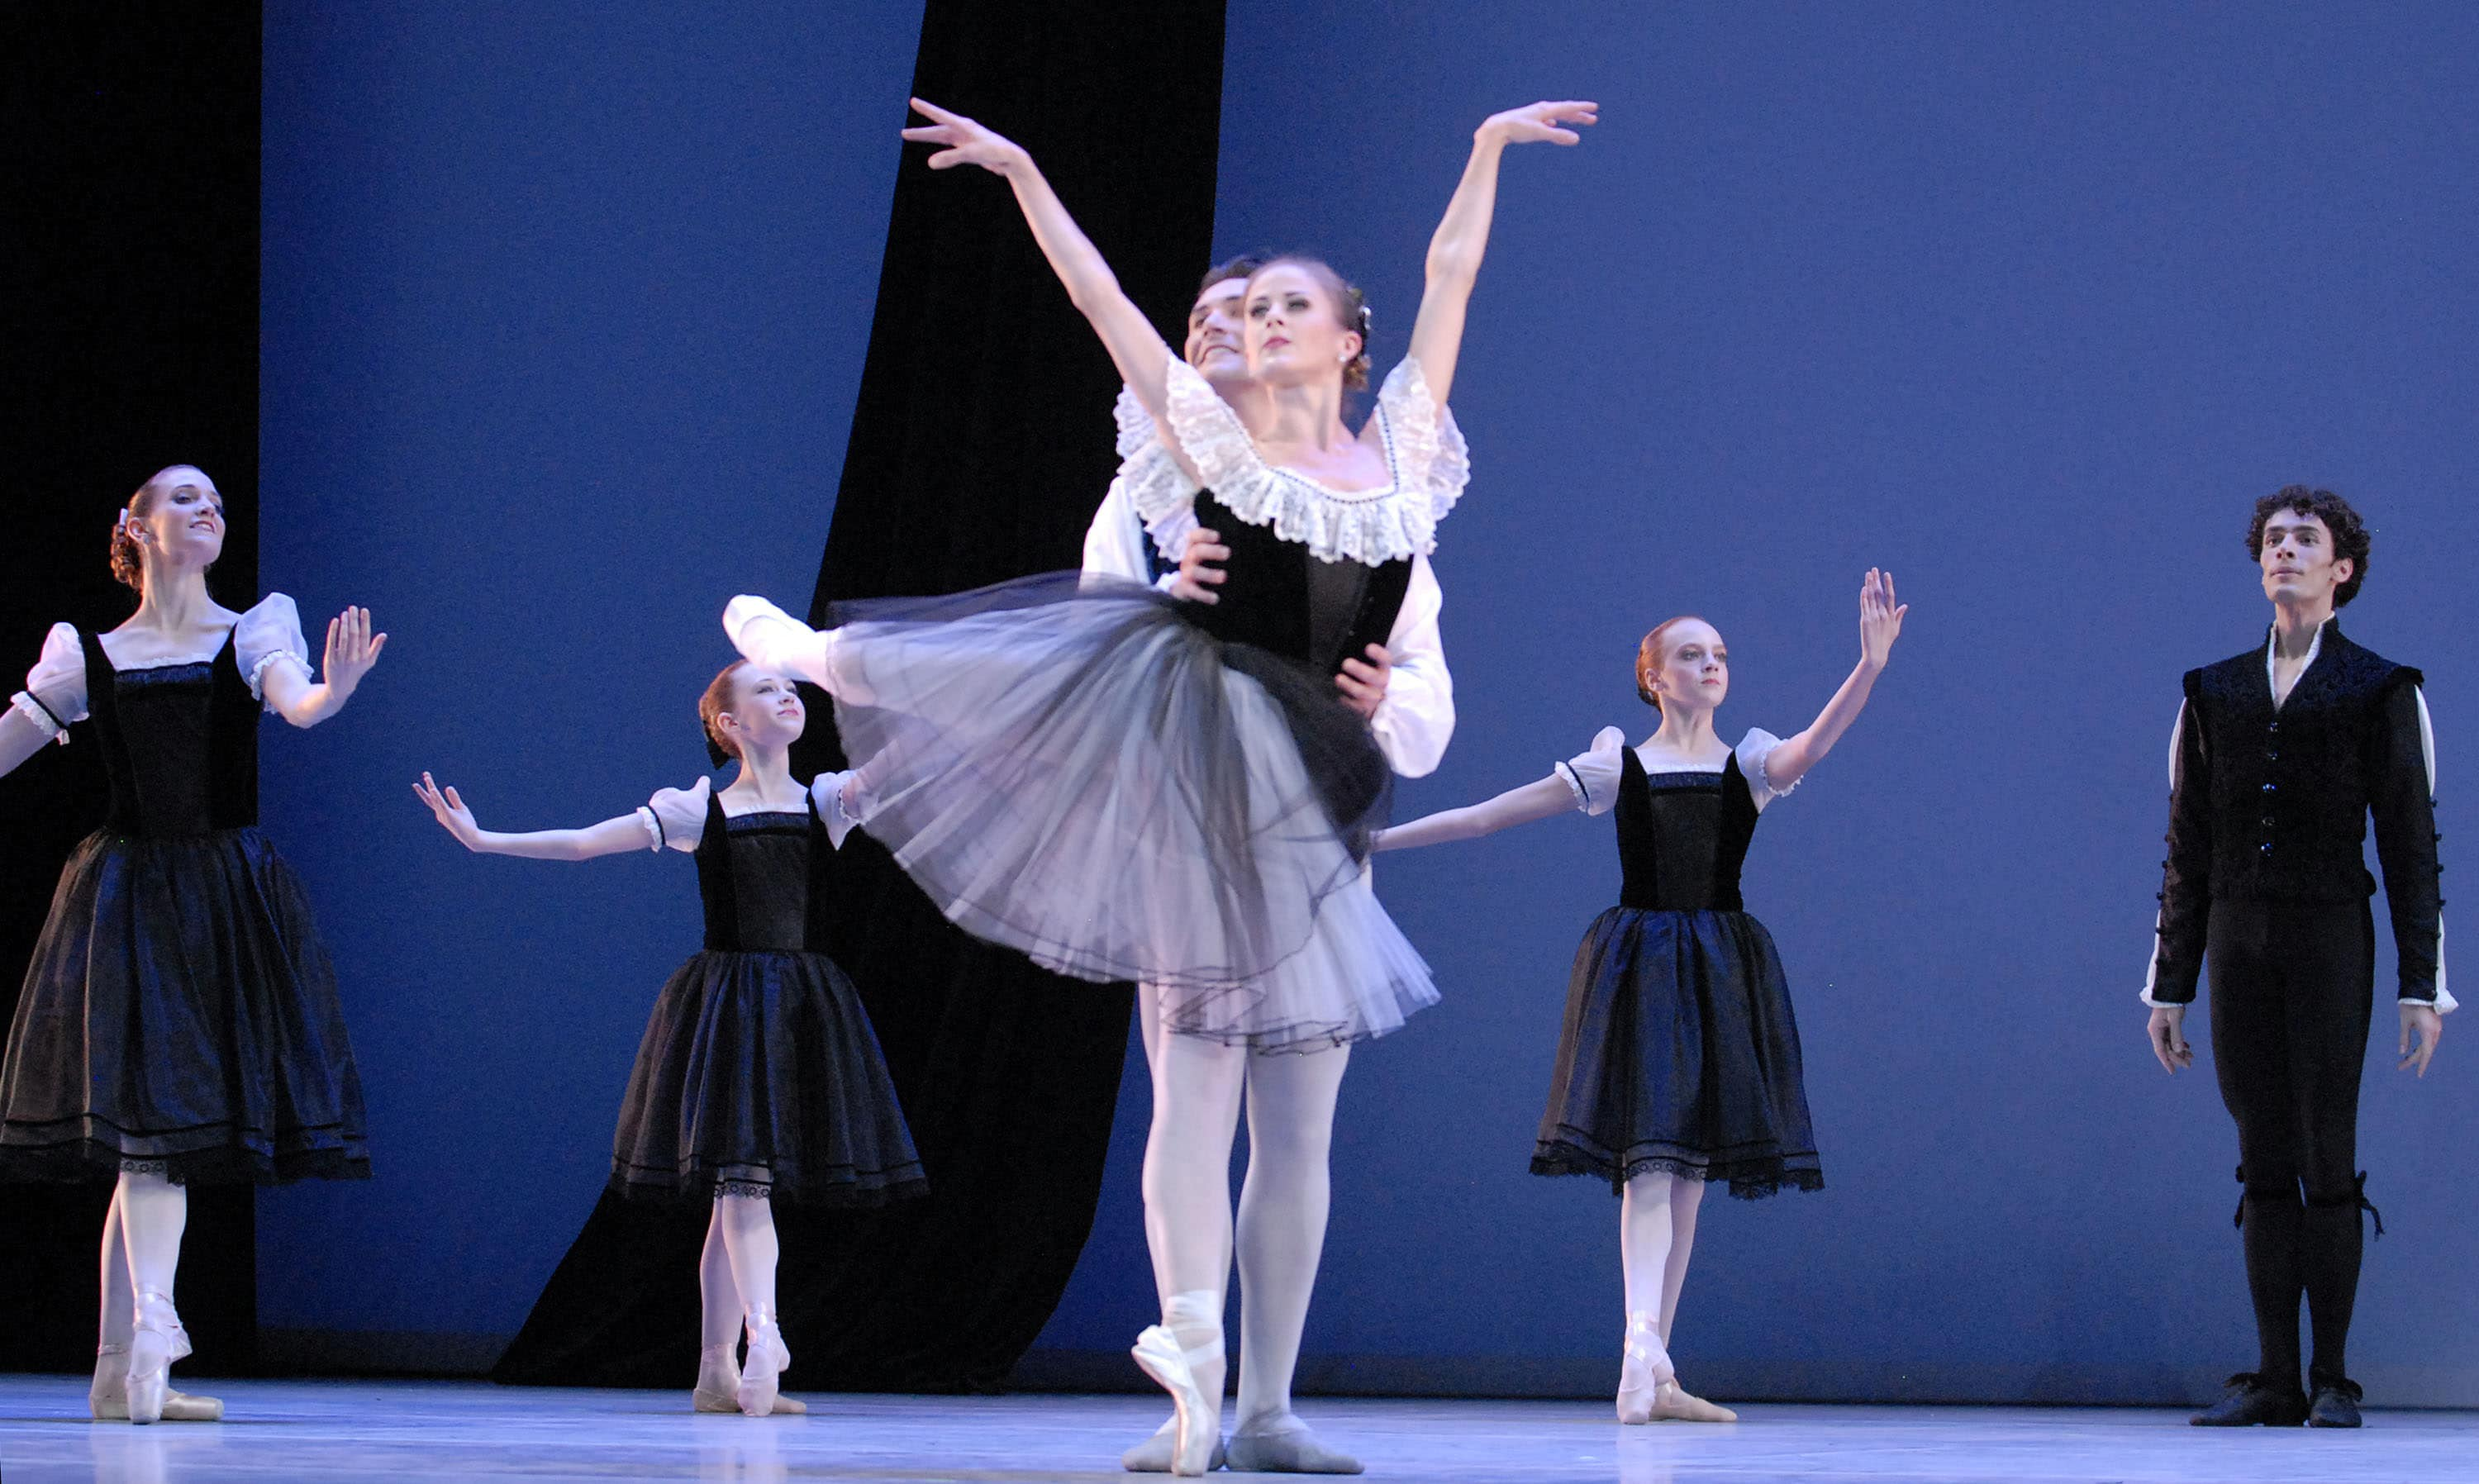 Suzanne Farrell Ballet at The Kennedy Center by Carolyn Kelemen - DC Metro Theater Arts